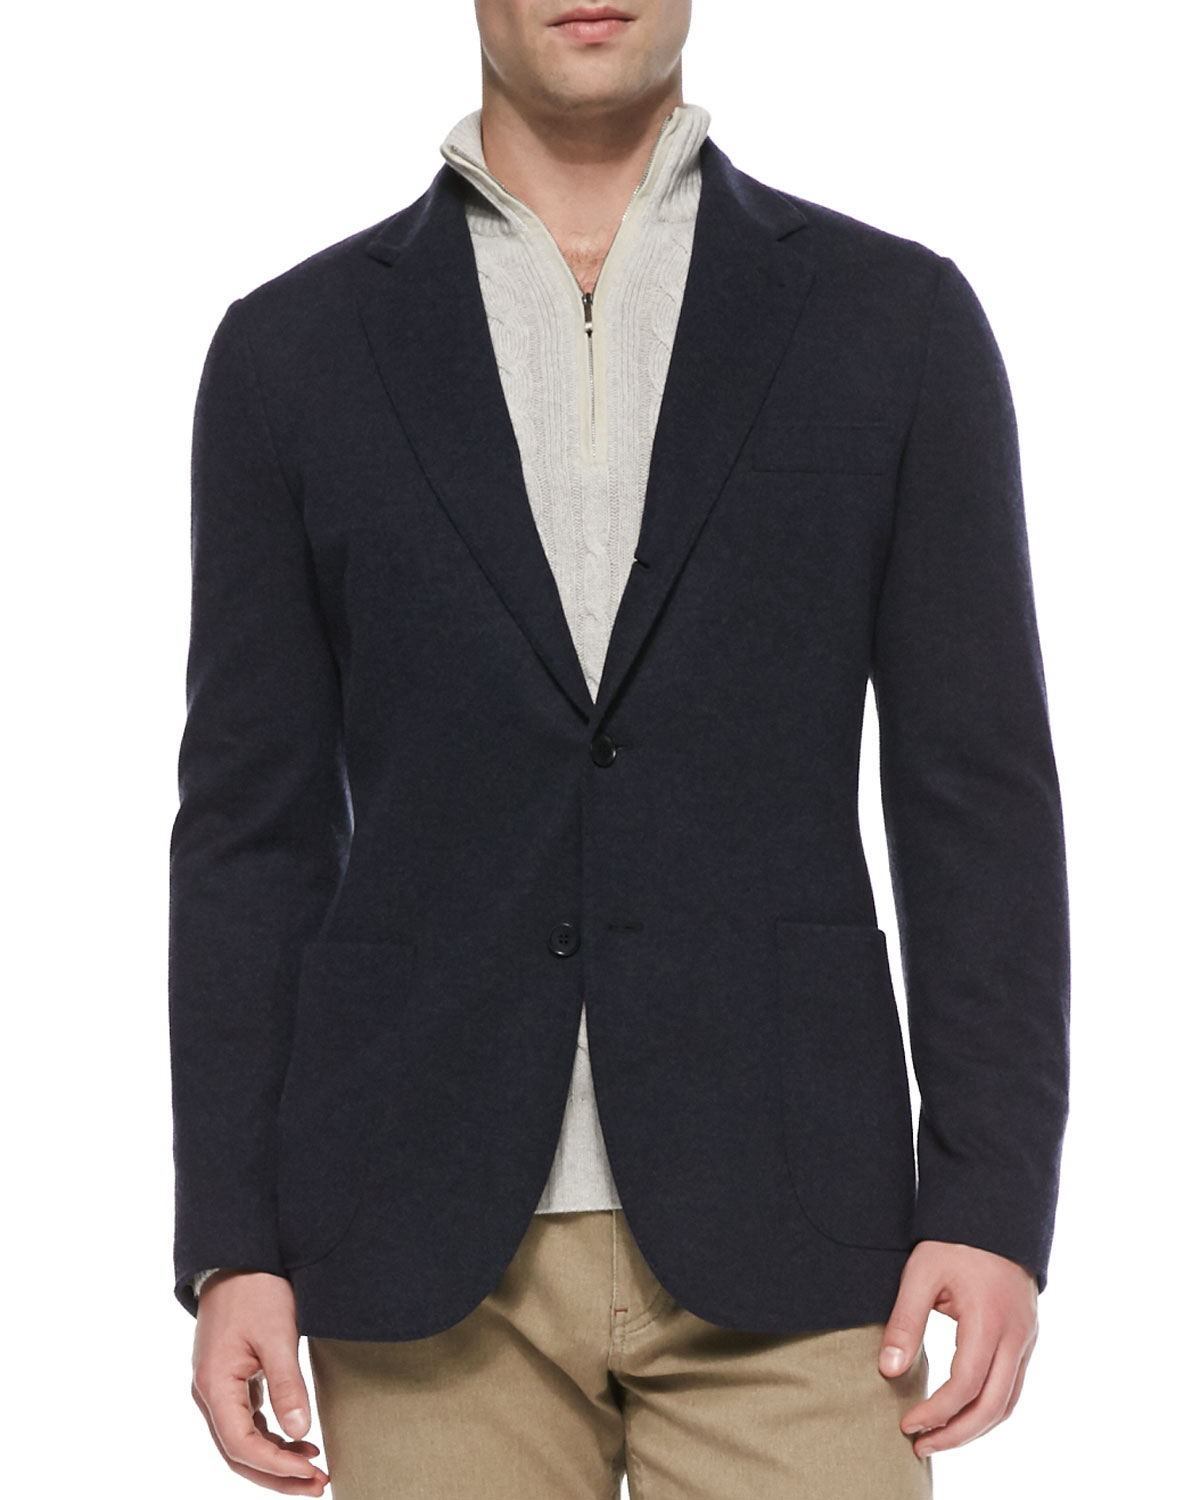 903f0496f Lyst - Loro Piana Baby Cashmere Sweater Jacket in Black for Men